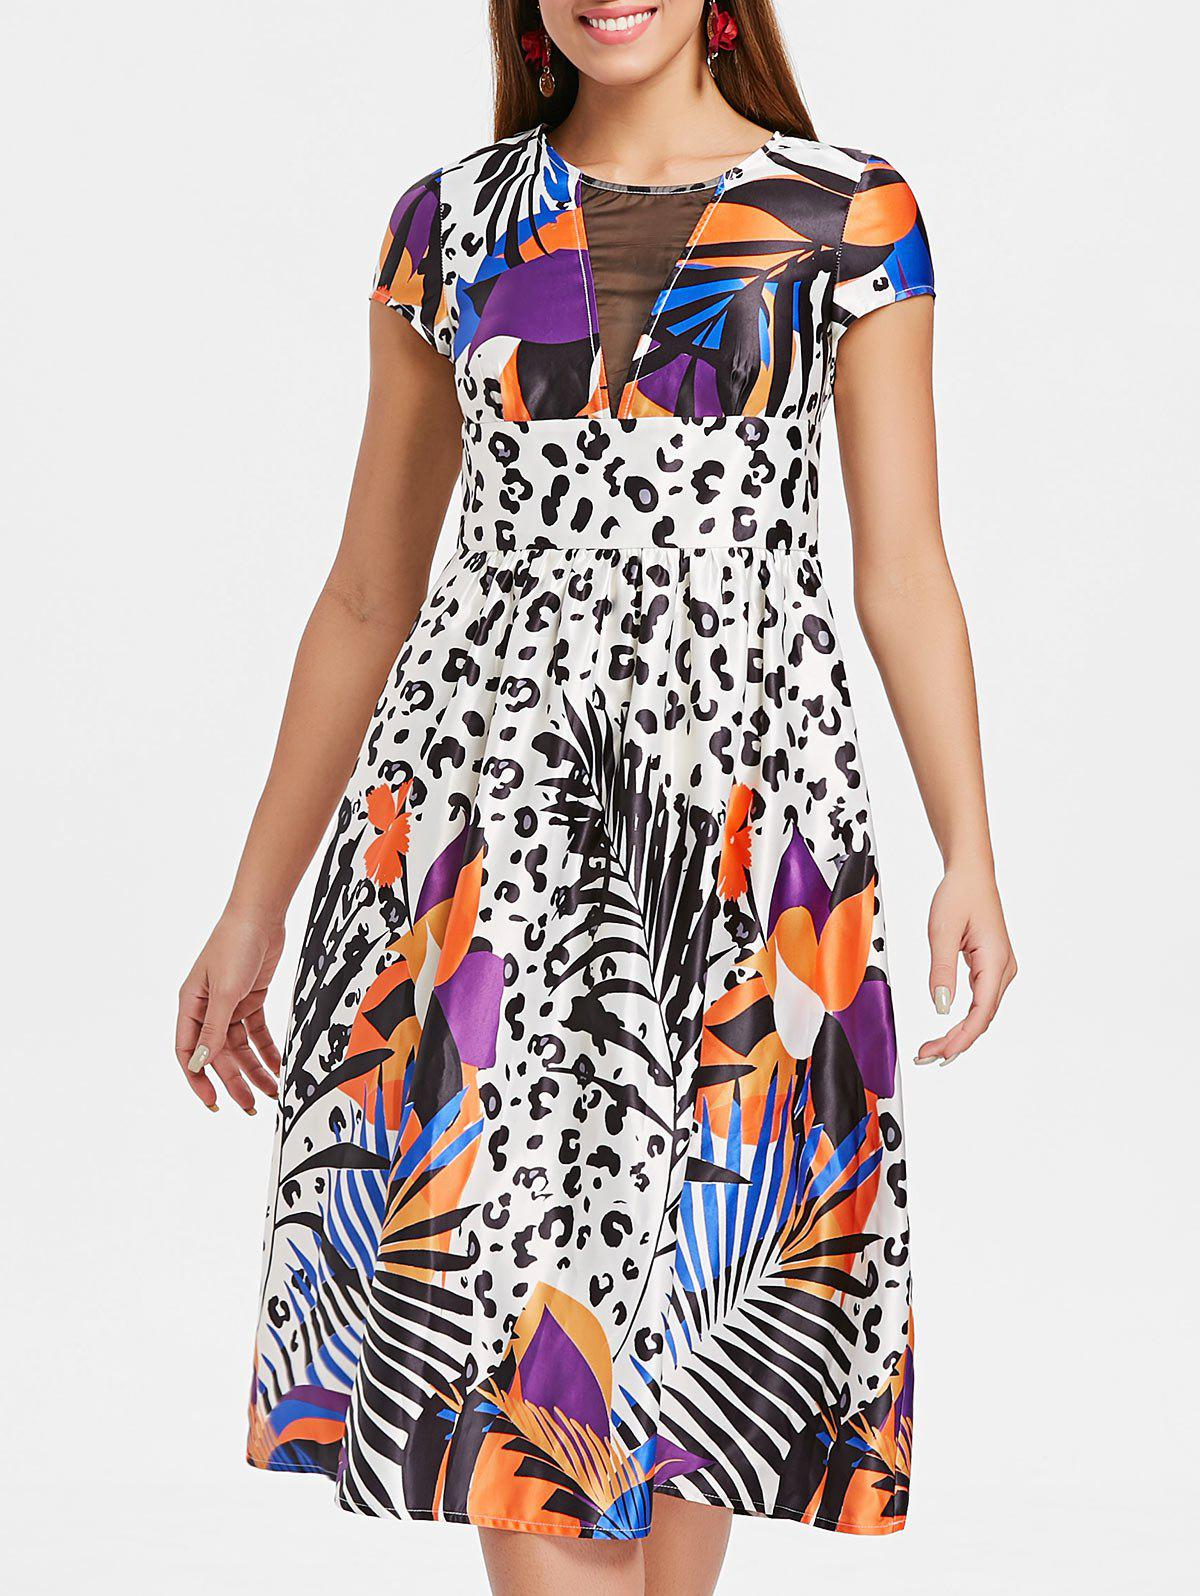 Shops Mesh Panel Printed Fit and Flare Dress